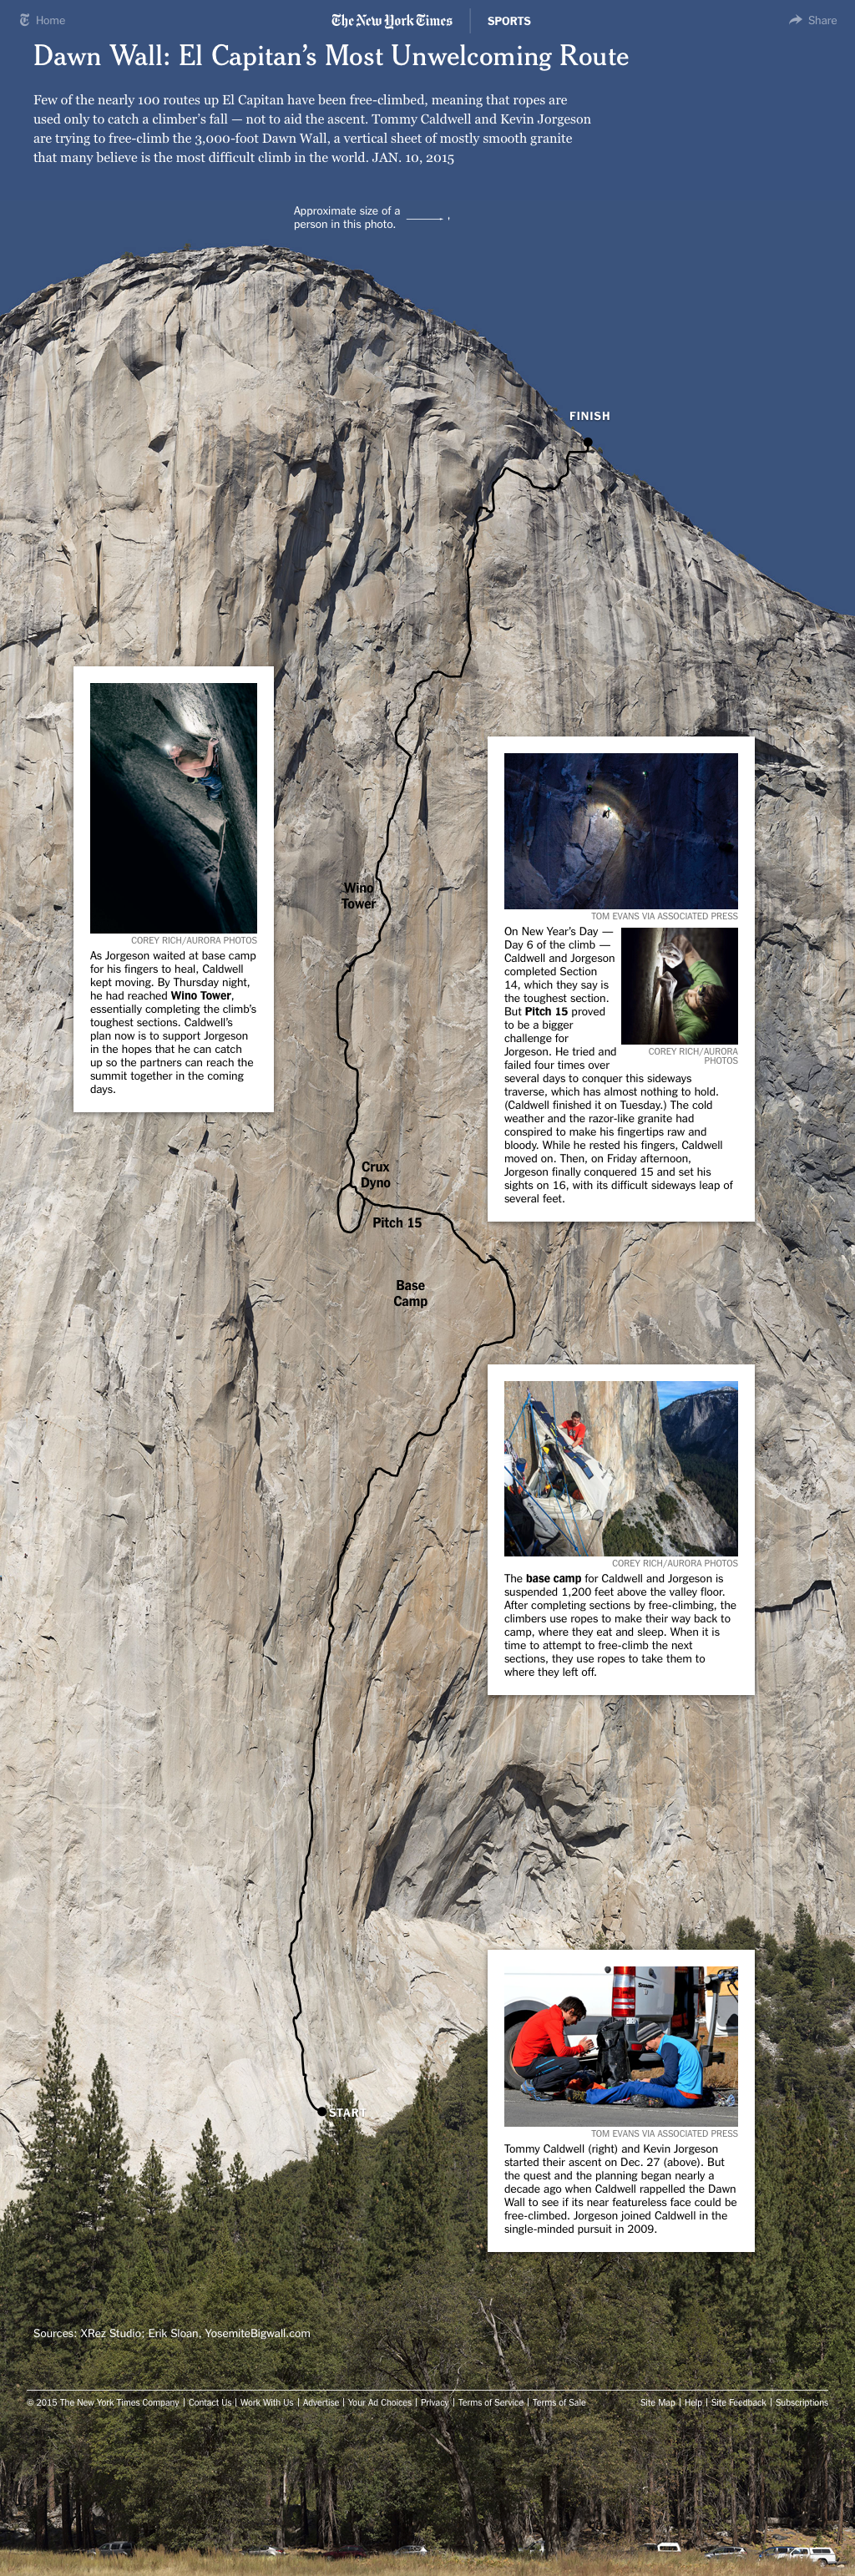 The Dawn Wall by The New York Times